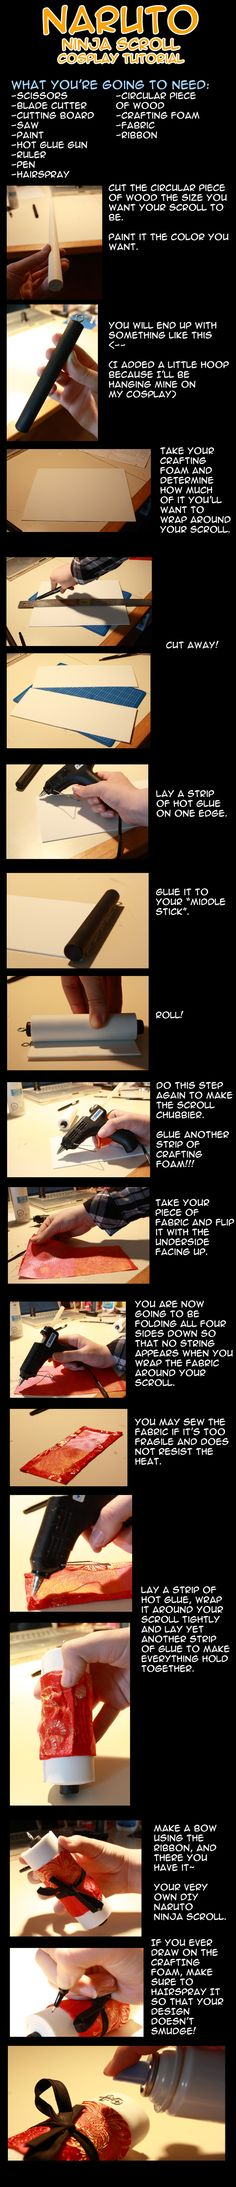 Naruto Ninja Scroll Tutorial by LiquidNytrogen on DeviantArt Cosplay Diy, Cosplay Outfits, Best Cosplay, Cosplay Costumes, Cosplay Ideas, Anime Diys, Anime Crafts, Naruto Party Ideas, Naruto Birthday